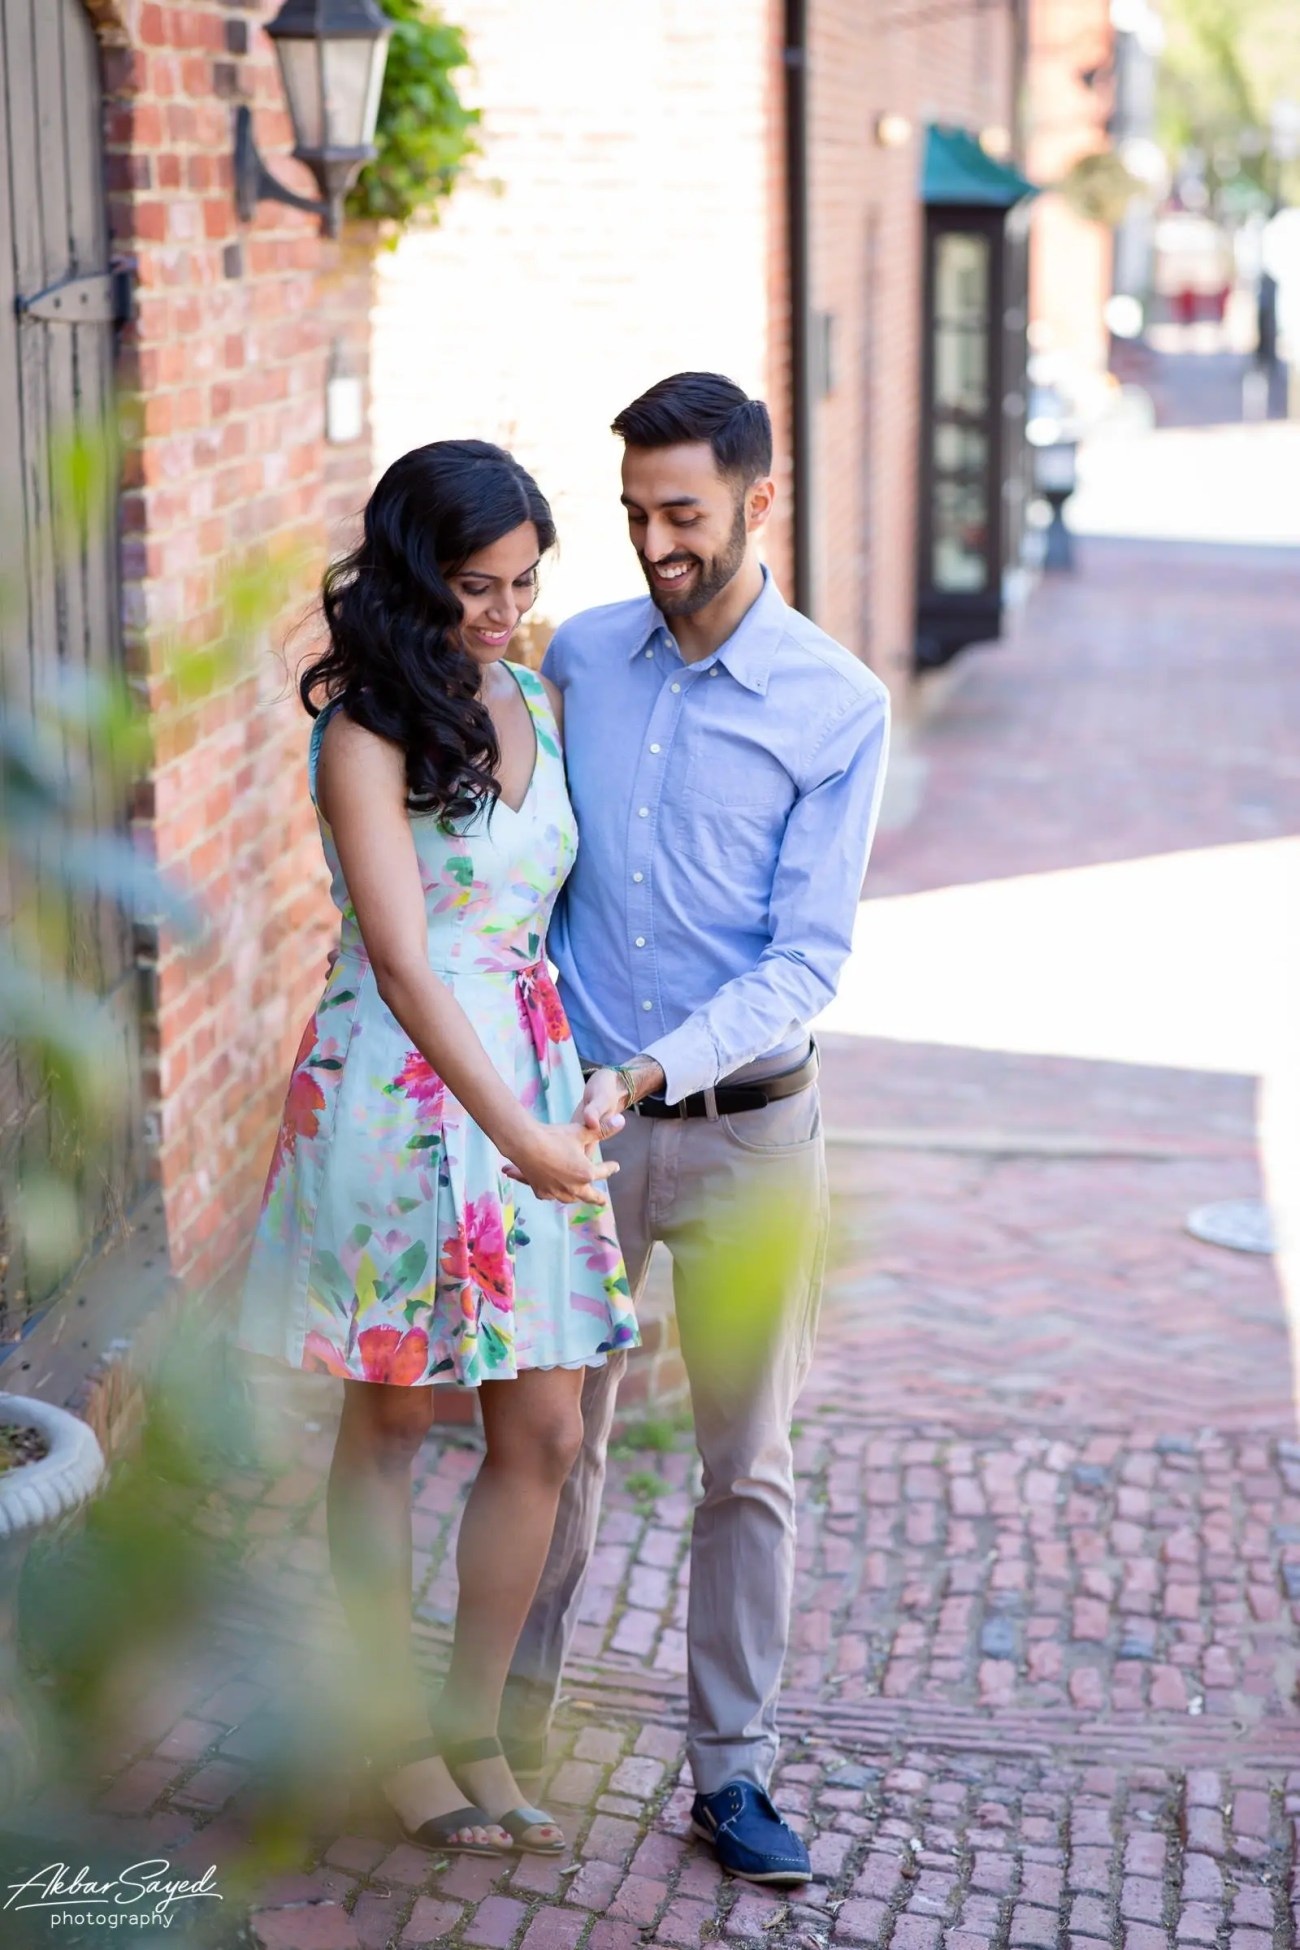 Old Town Alexandria engagement photo with an engaged Indian - American couple against a brick wall.